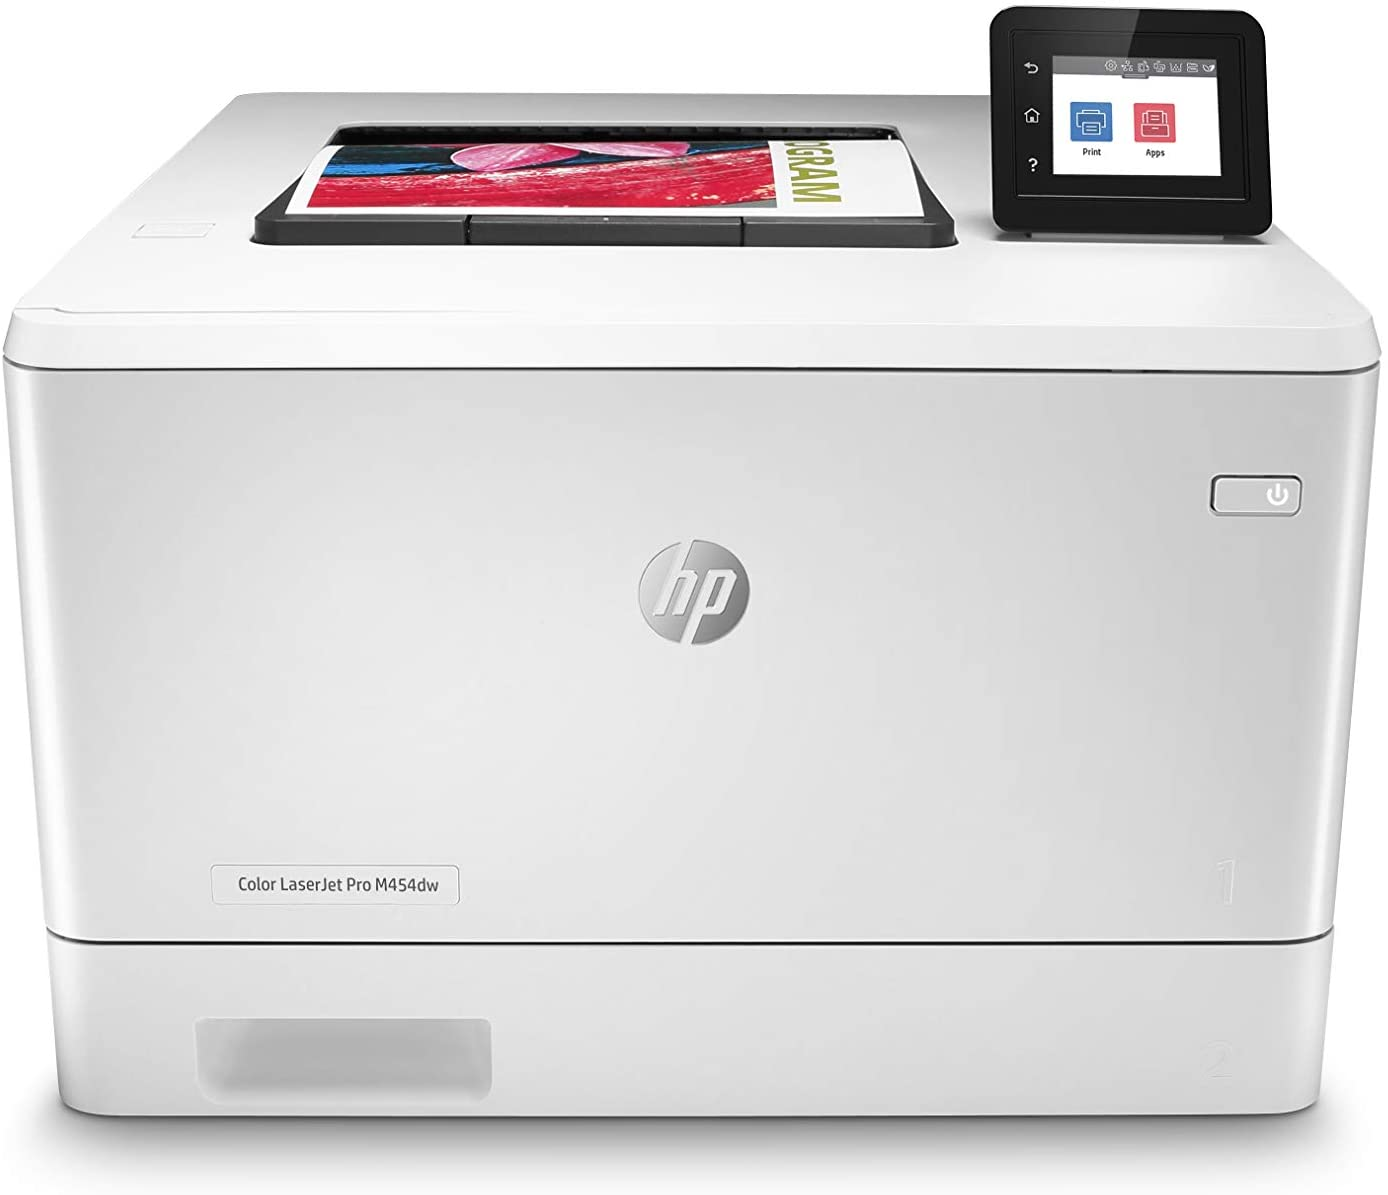 HP Color LaserJet Pro M454dw Wireless Laser Printer, Double-Sided & Mobile Printing, Security Features (W1Y45A)